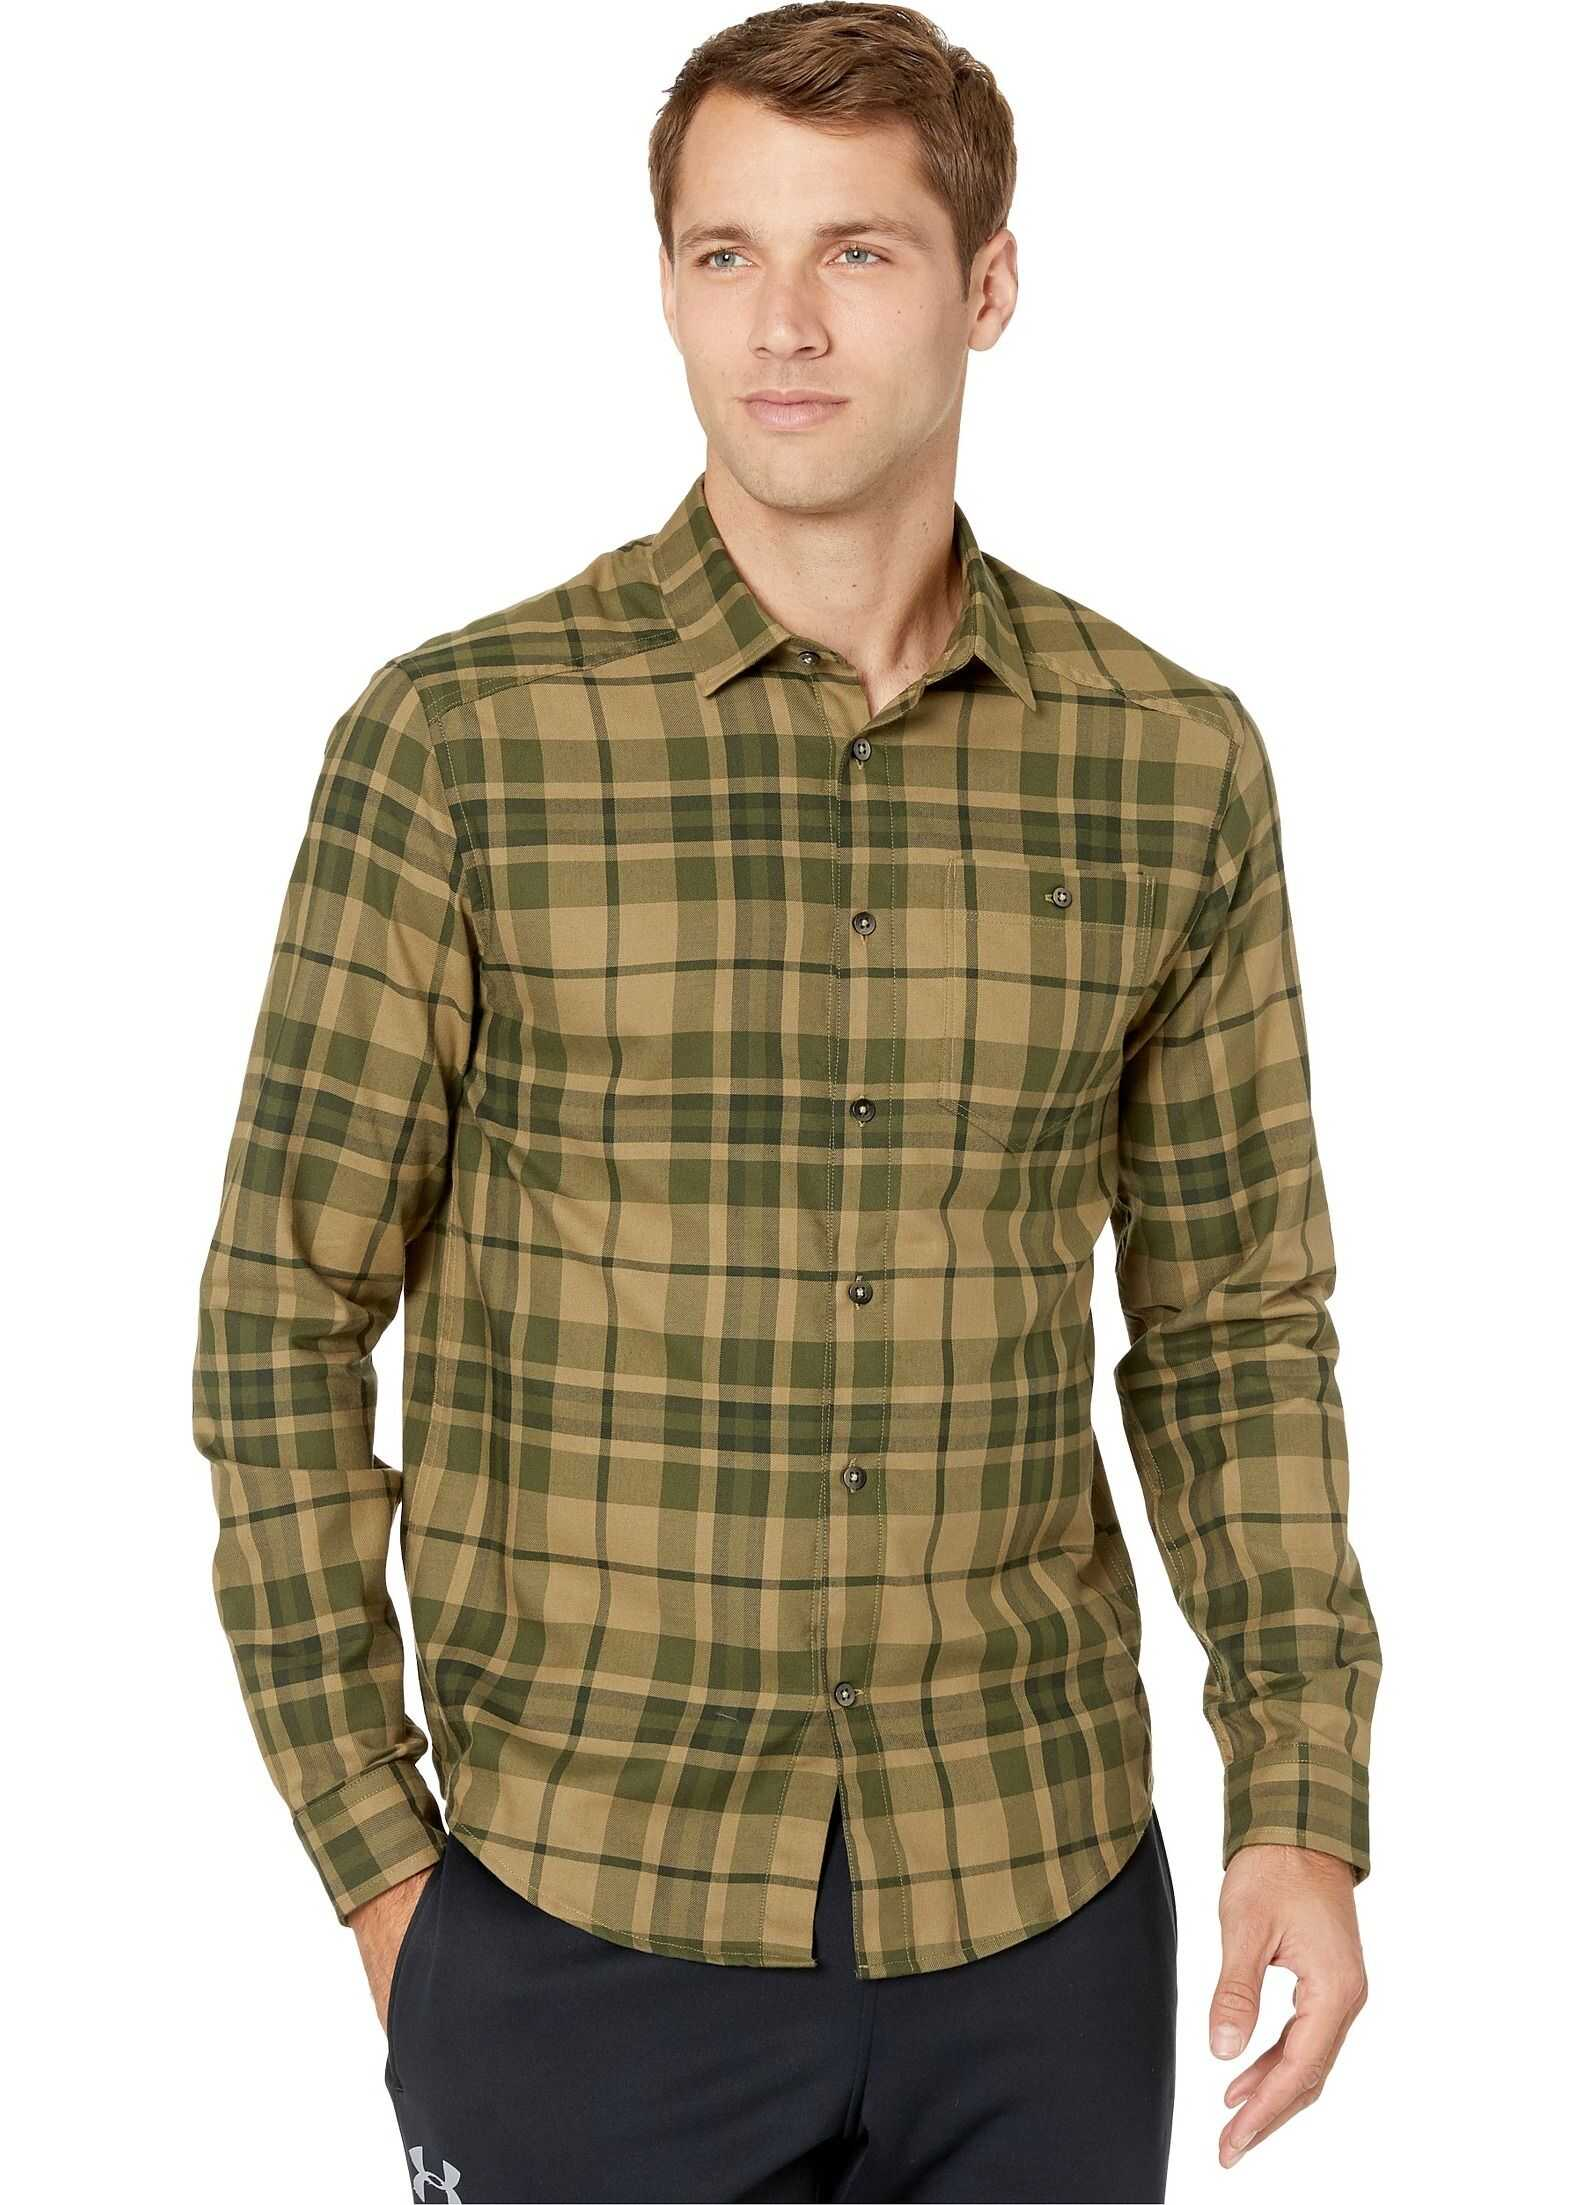 Under Armour Tradesman Flannel 2.0 Outpost Green/Guardian Green